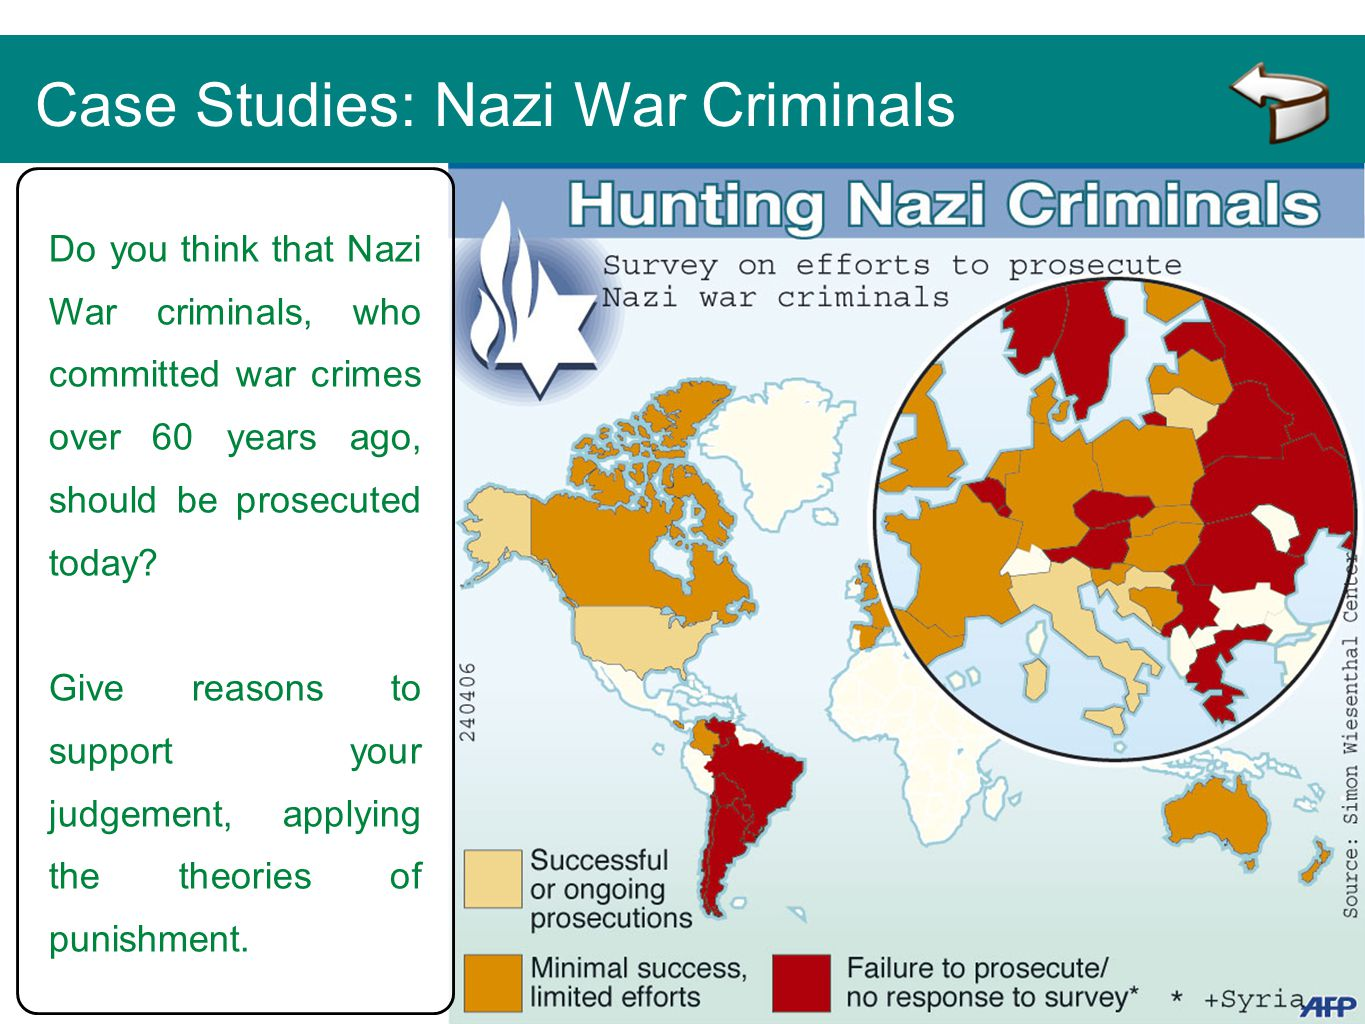 Case Studies: Nazi War Criminals Do you think that Nazi War criminals, who committed war crimes over 60 years ago, should be prosecuted today? Give re